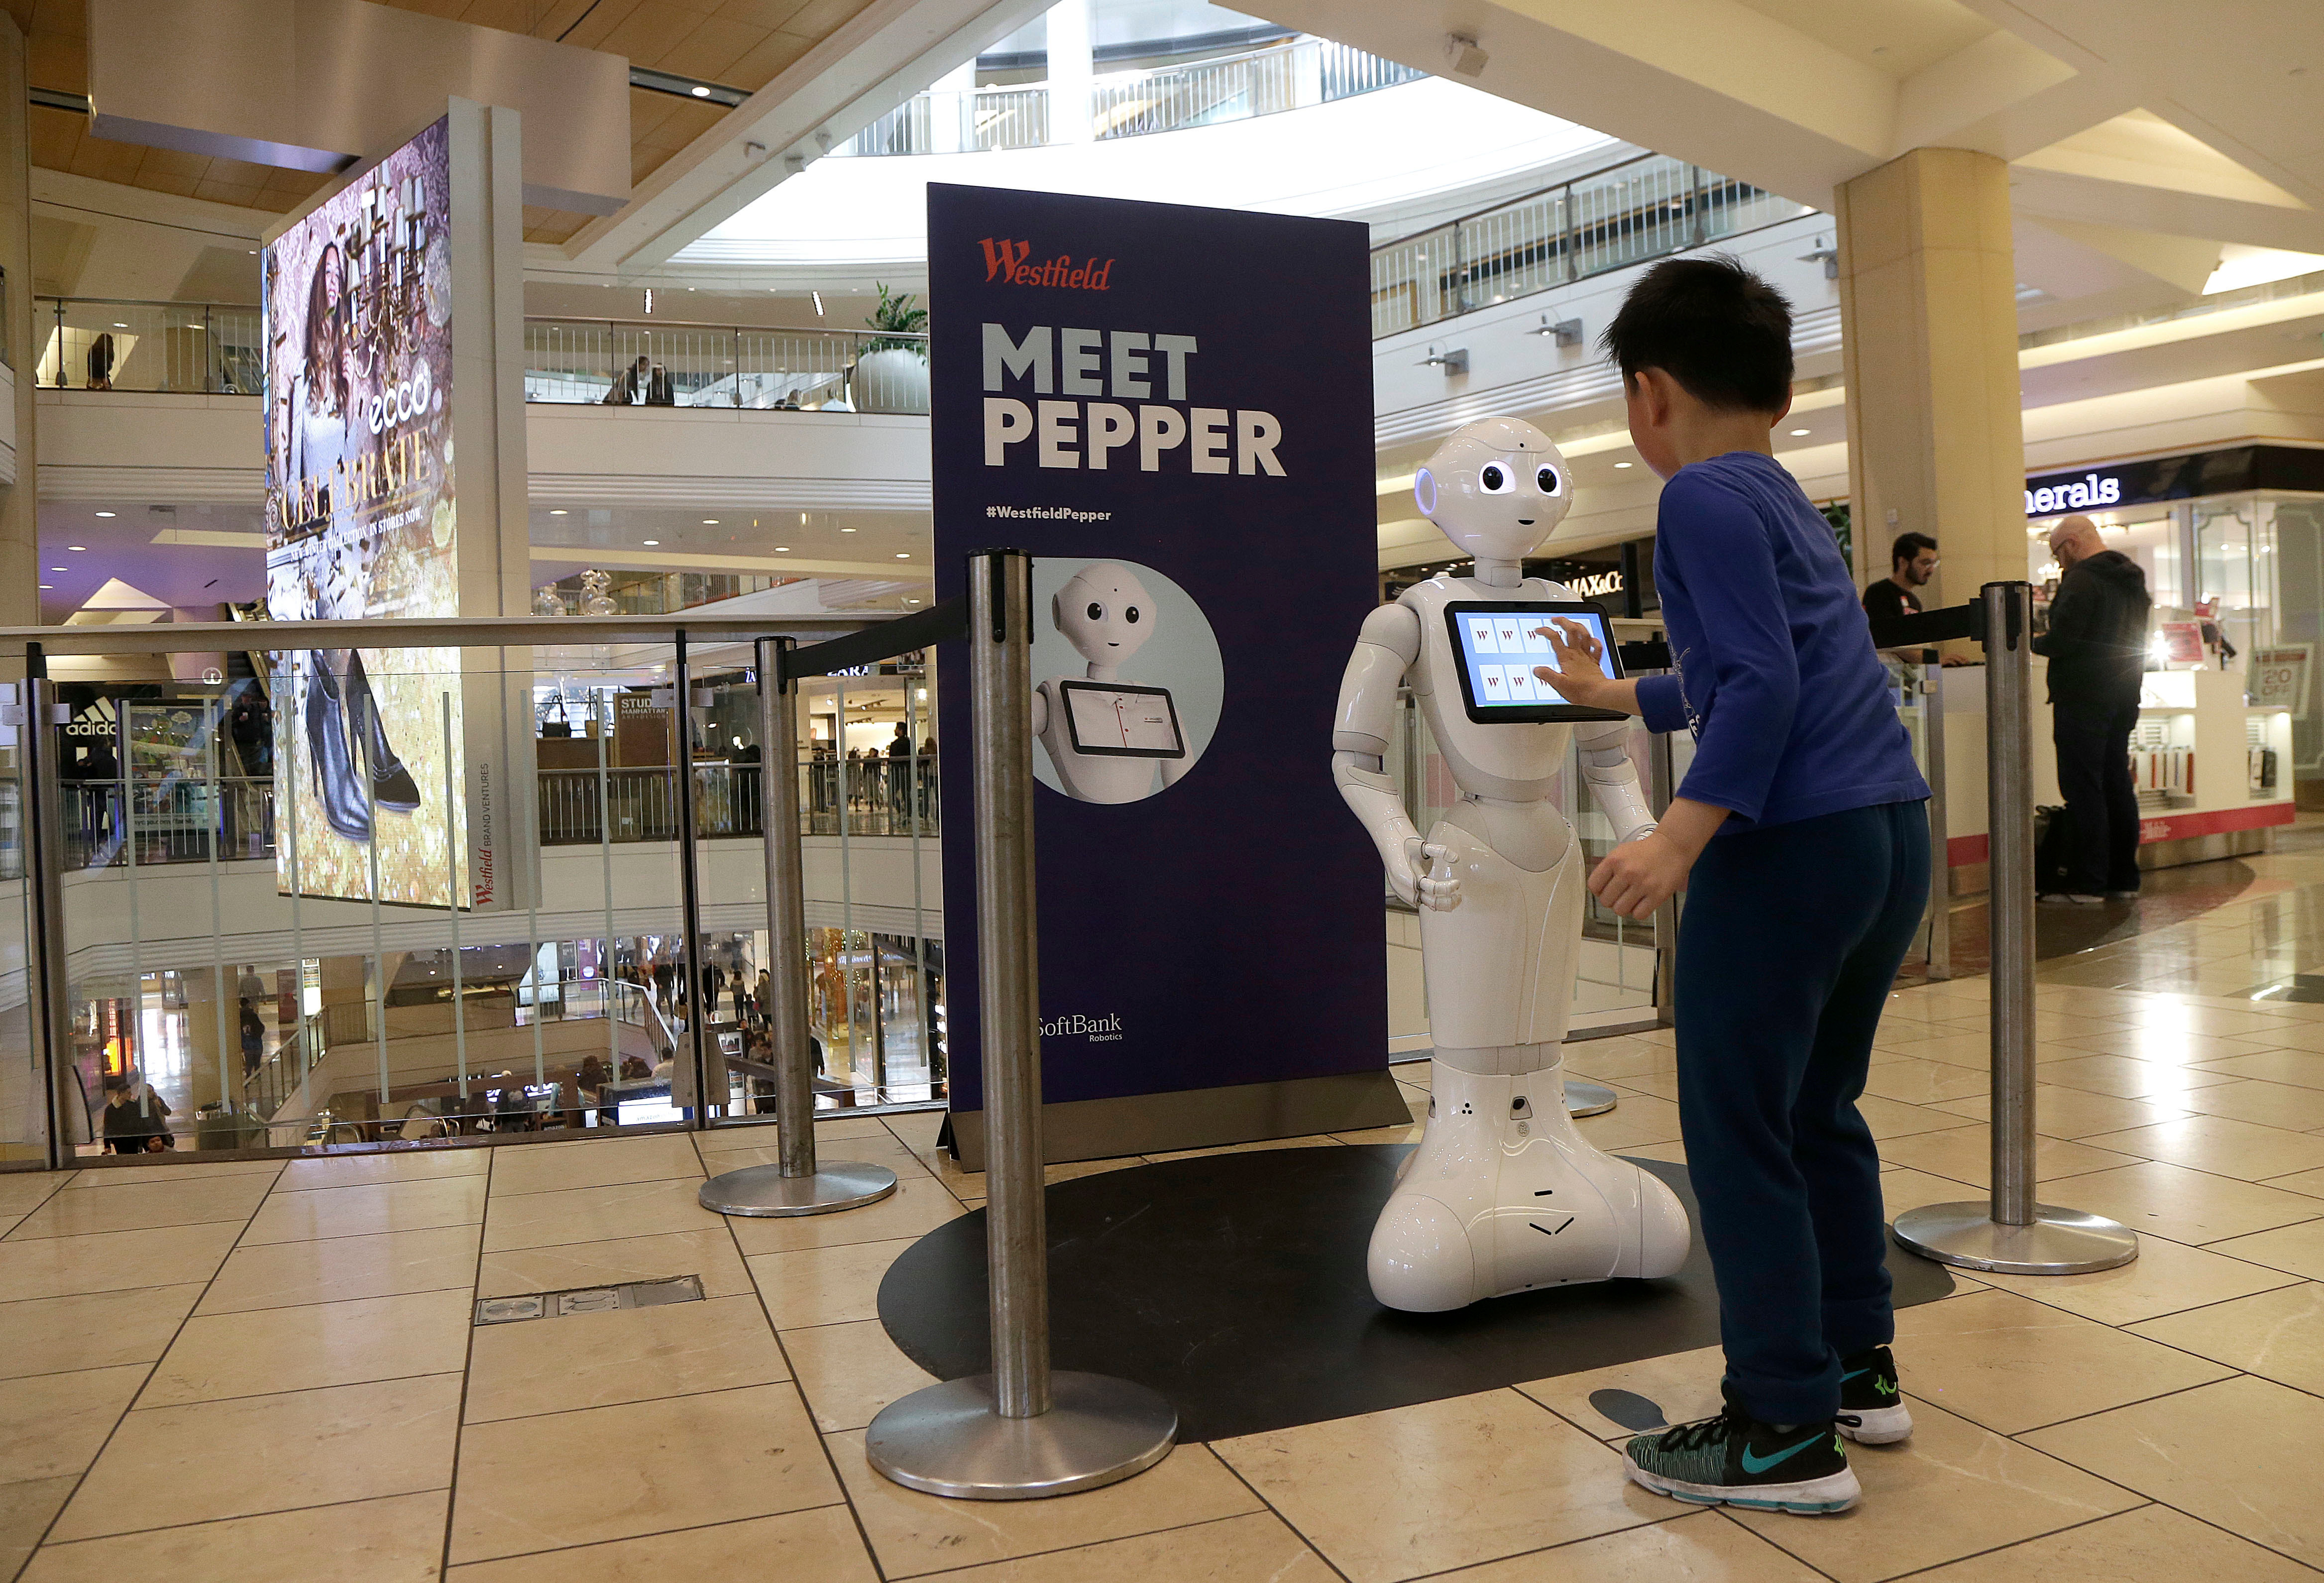 A boy plays with Pepper the robot at Westfield Mall in San Francisco. While merrily chirping, dancing and posing for selfies, Pepper looks like another expensive toy in the San Francisco mall where it will be entertaining shoppers through mid-February. But it would be a mistake to dismiss Pepper as mere child's play, even though kids flock around the 4-foot-tall humanoid as it speaks in a cherubic voice that could belong to either a boy or girlAmbitious Robot, San Francisco, USA - 22 Dec 2016